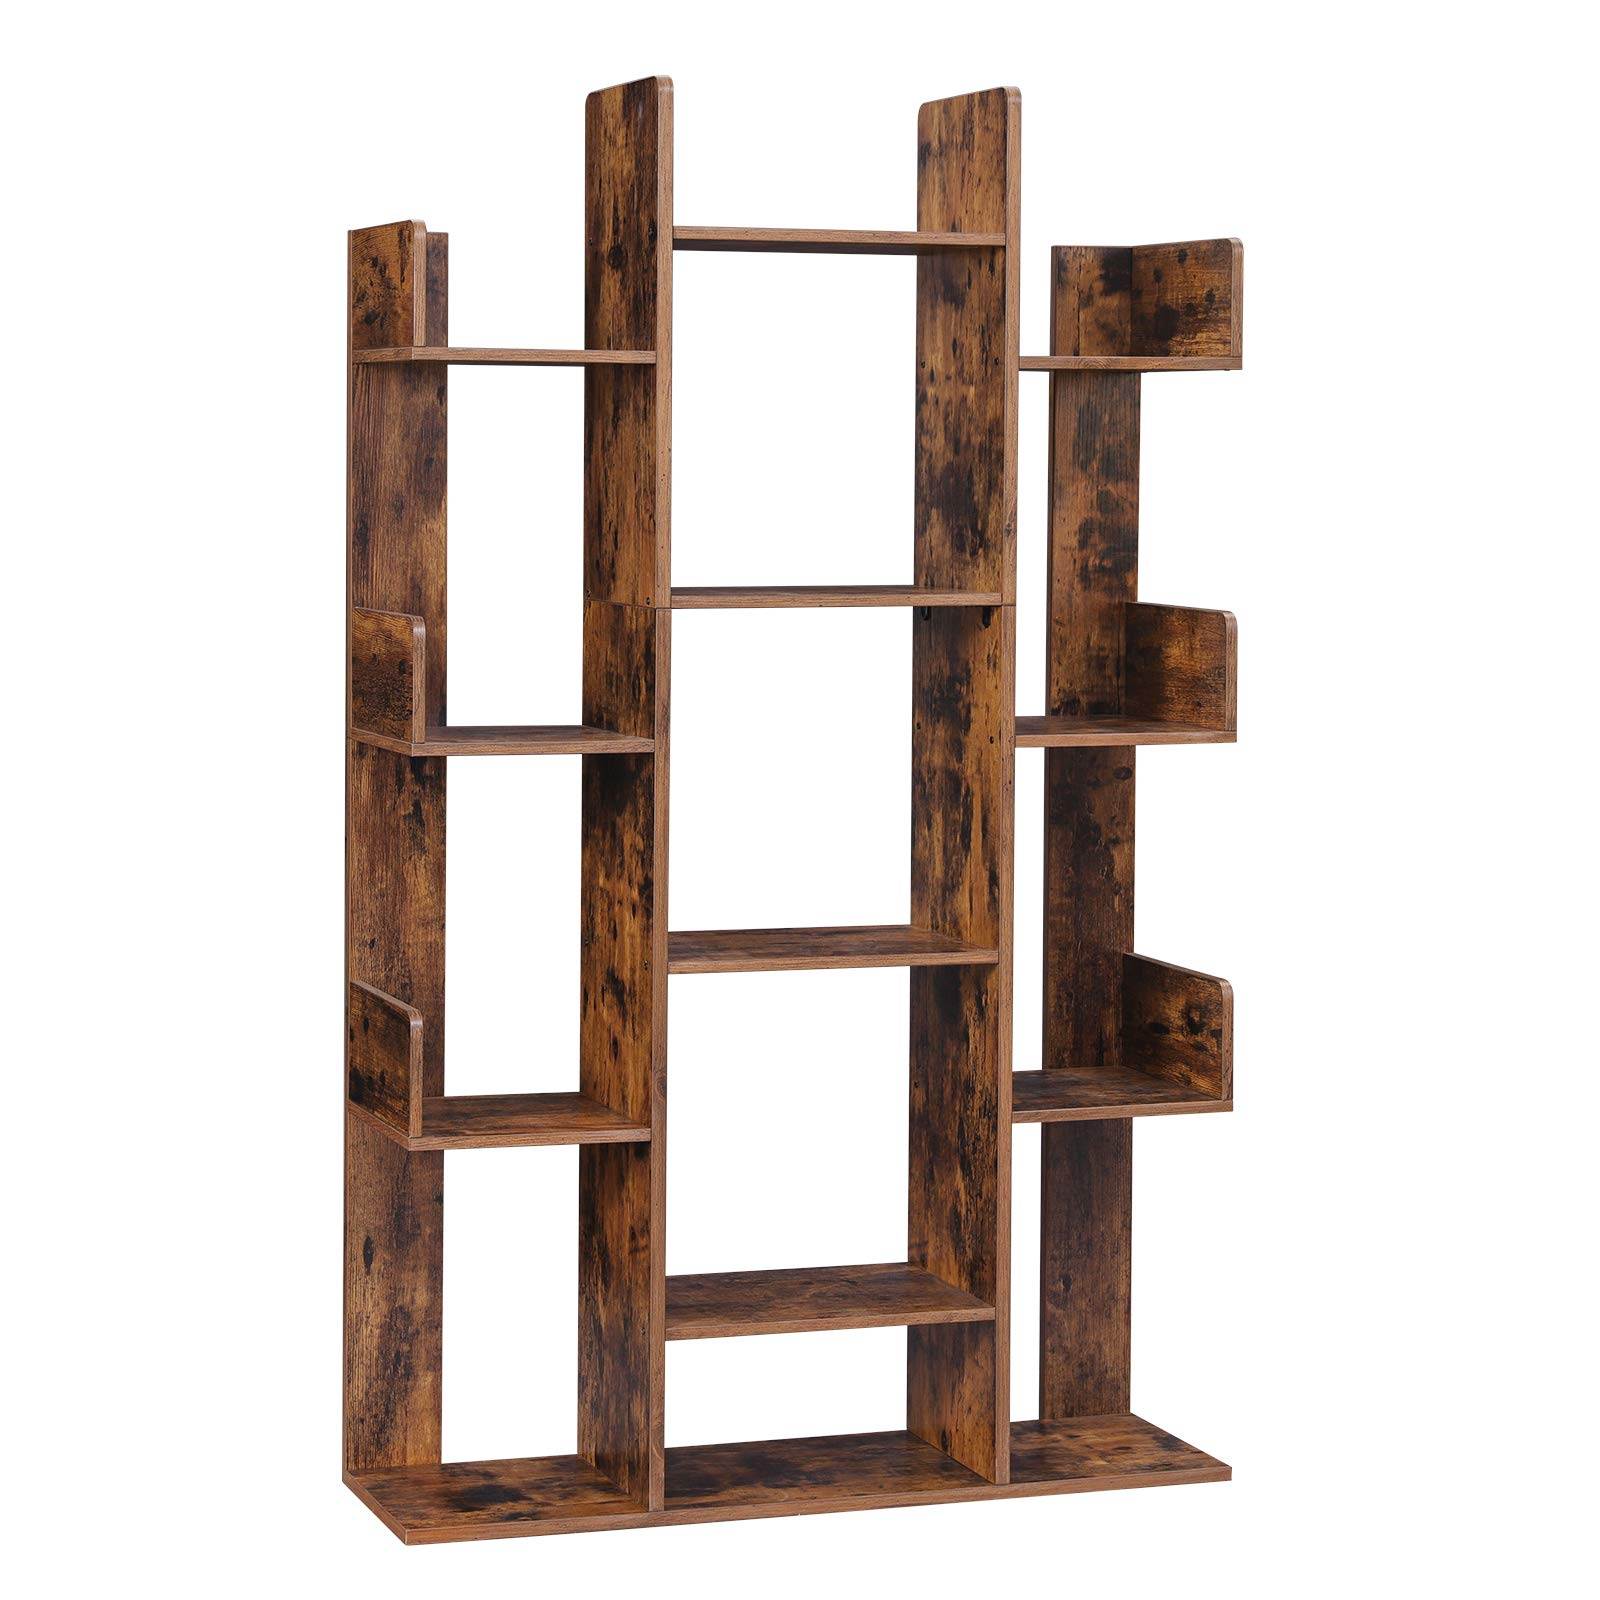 """VASAGLE Bookshelf, Tree-Shaped Bookcase with 13 Storage Shelves, Rounded Corners, 33.9""""L x 9.8""""W x 55.1""""H, Rustic Brown UL..."""